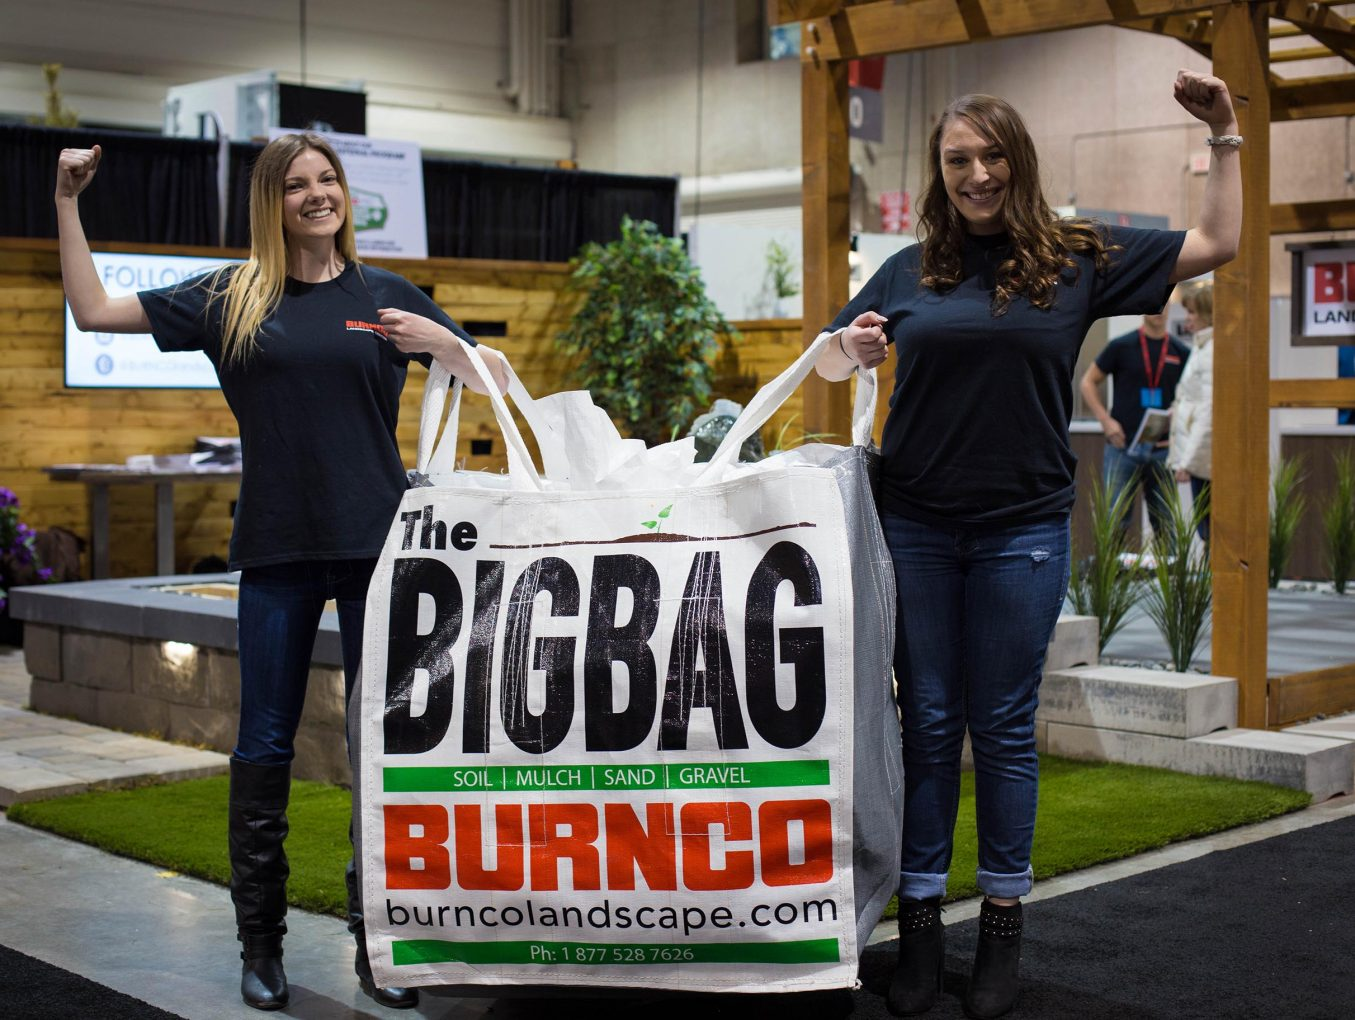 BURNCO at the Calgary Home + Garden Show March 1 - 4, 2018